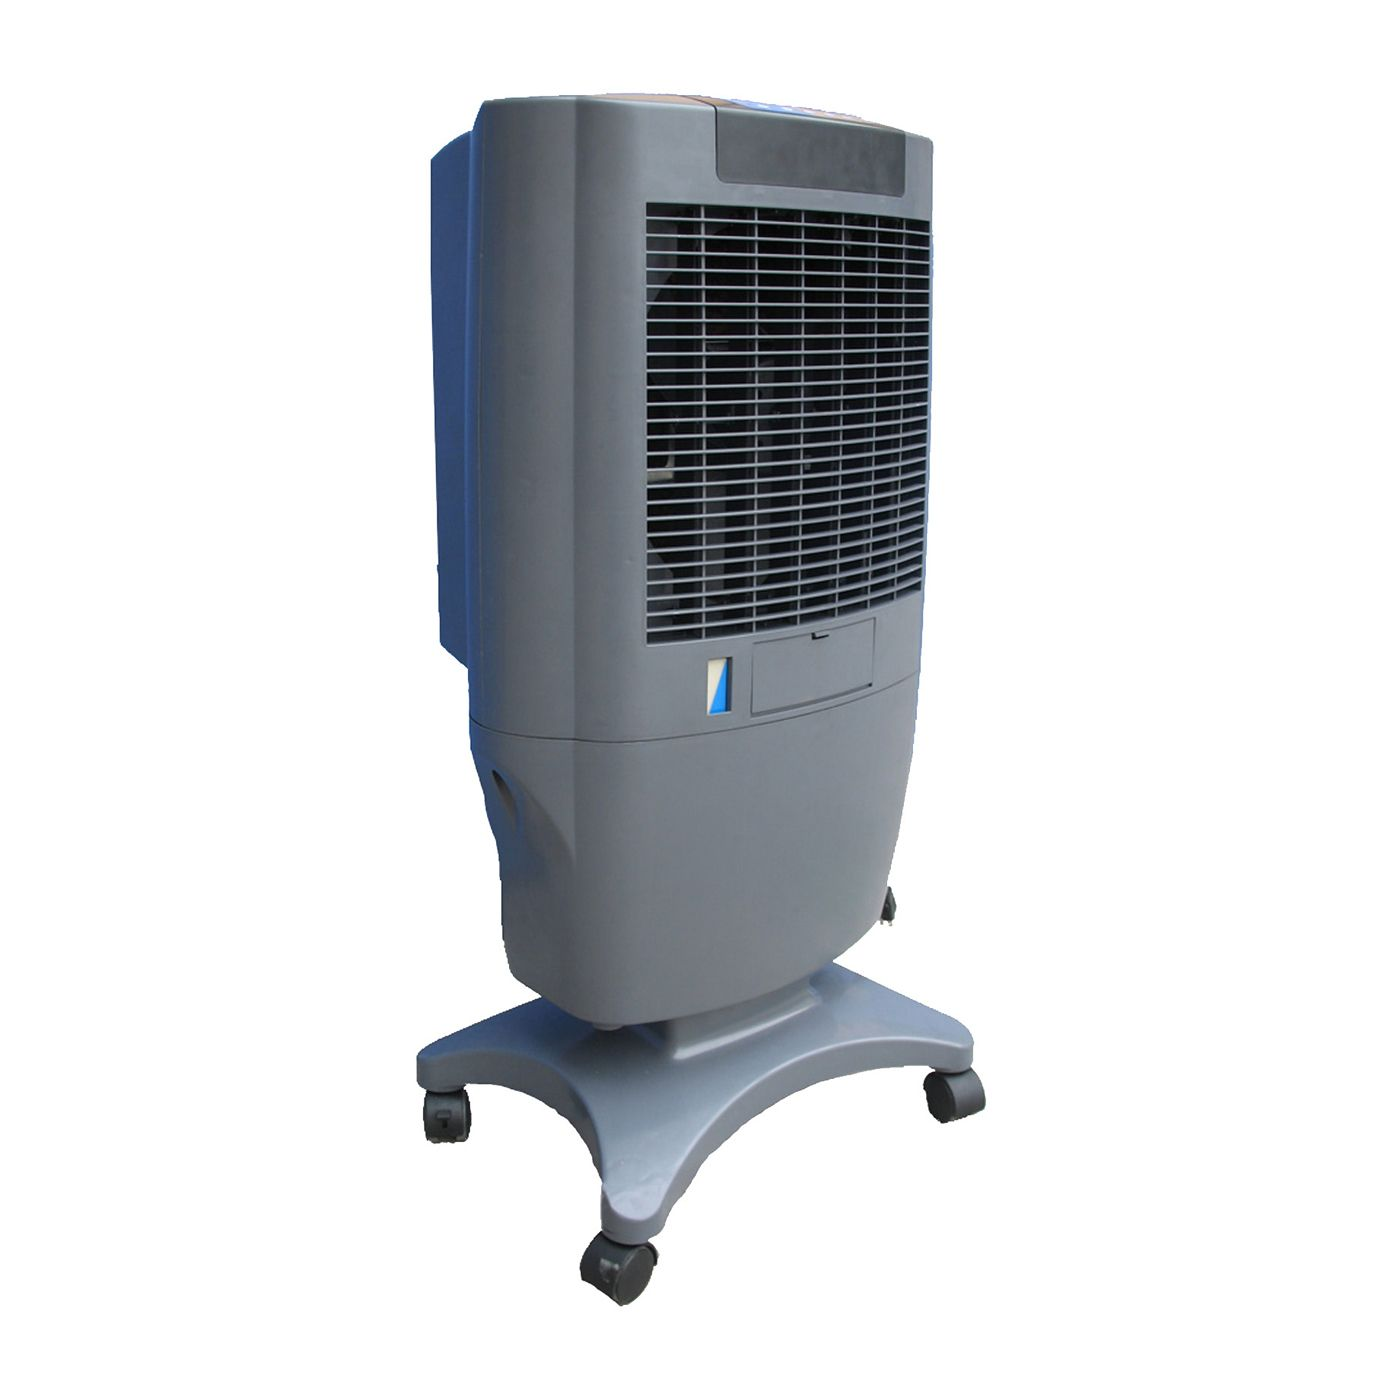 Champion Cooler Cp70 Ultracool 700 Cfm 3 Speed Portable Evaporative Cooler Air Conditioner Design Lowes Home Improvements Air Cooler